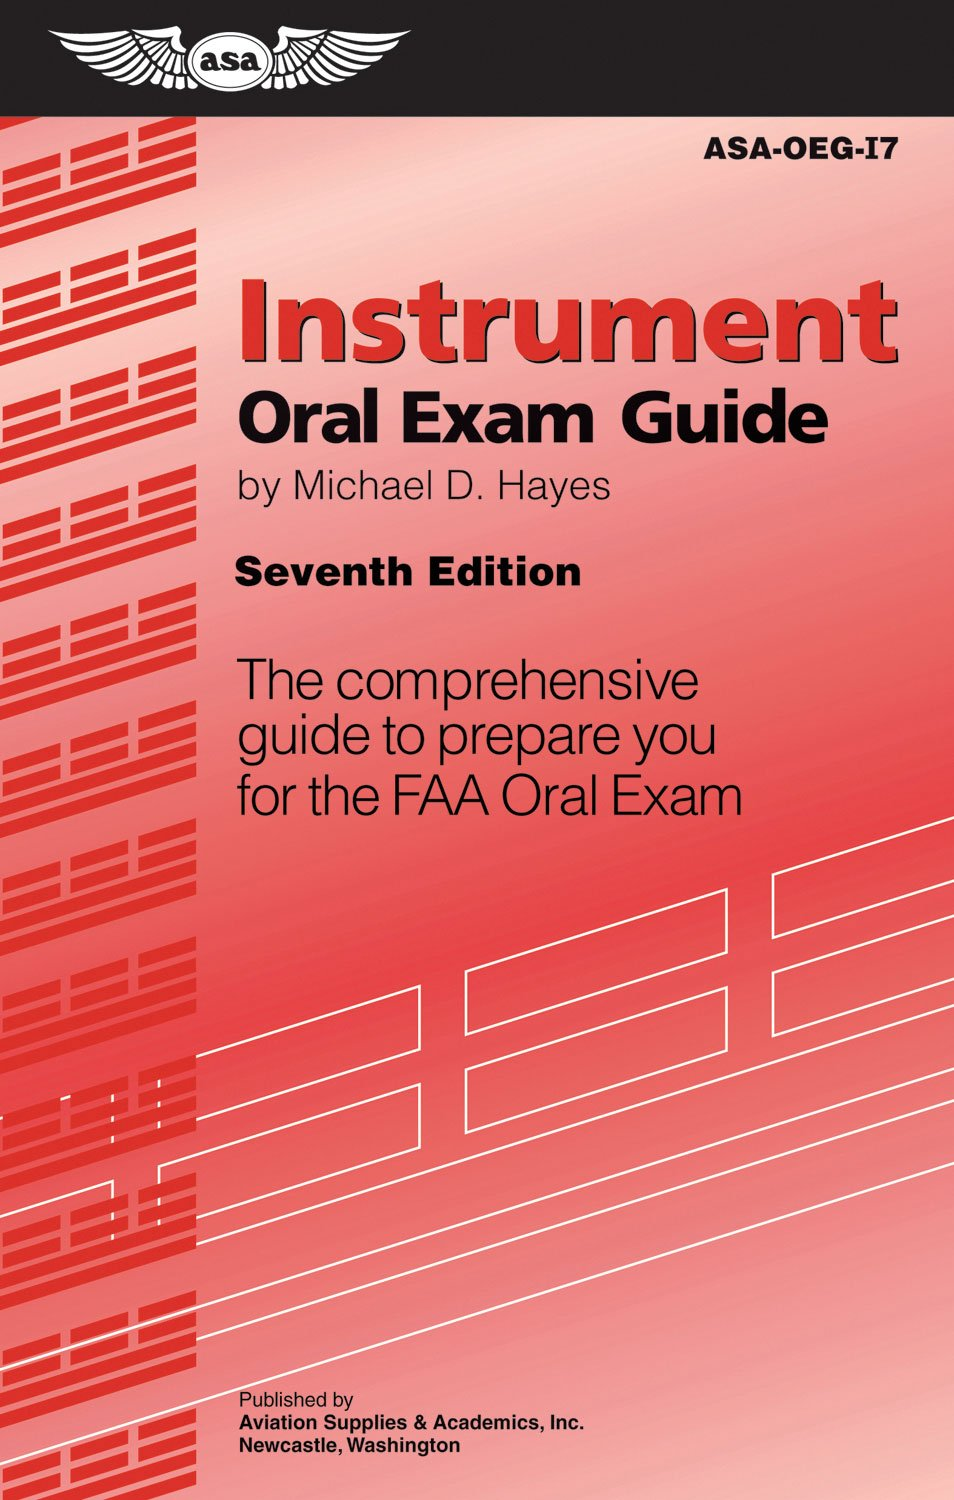 Instrument Oral Exam Guide: The Comprehensive Guide